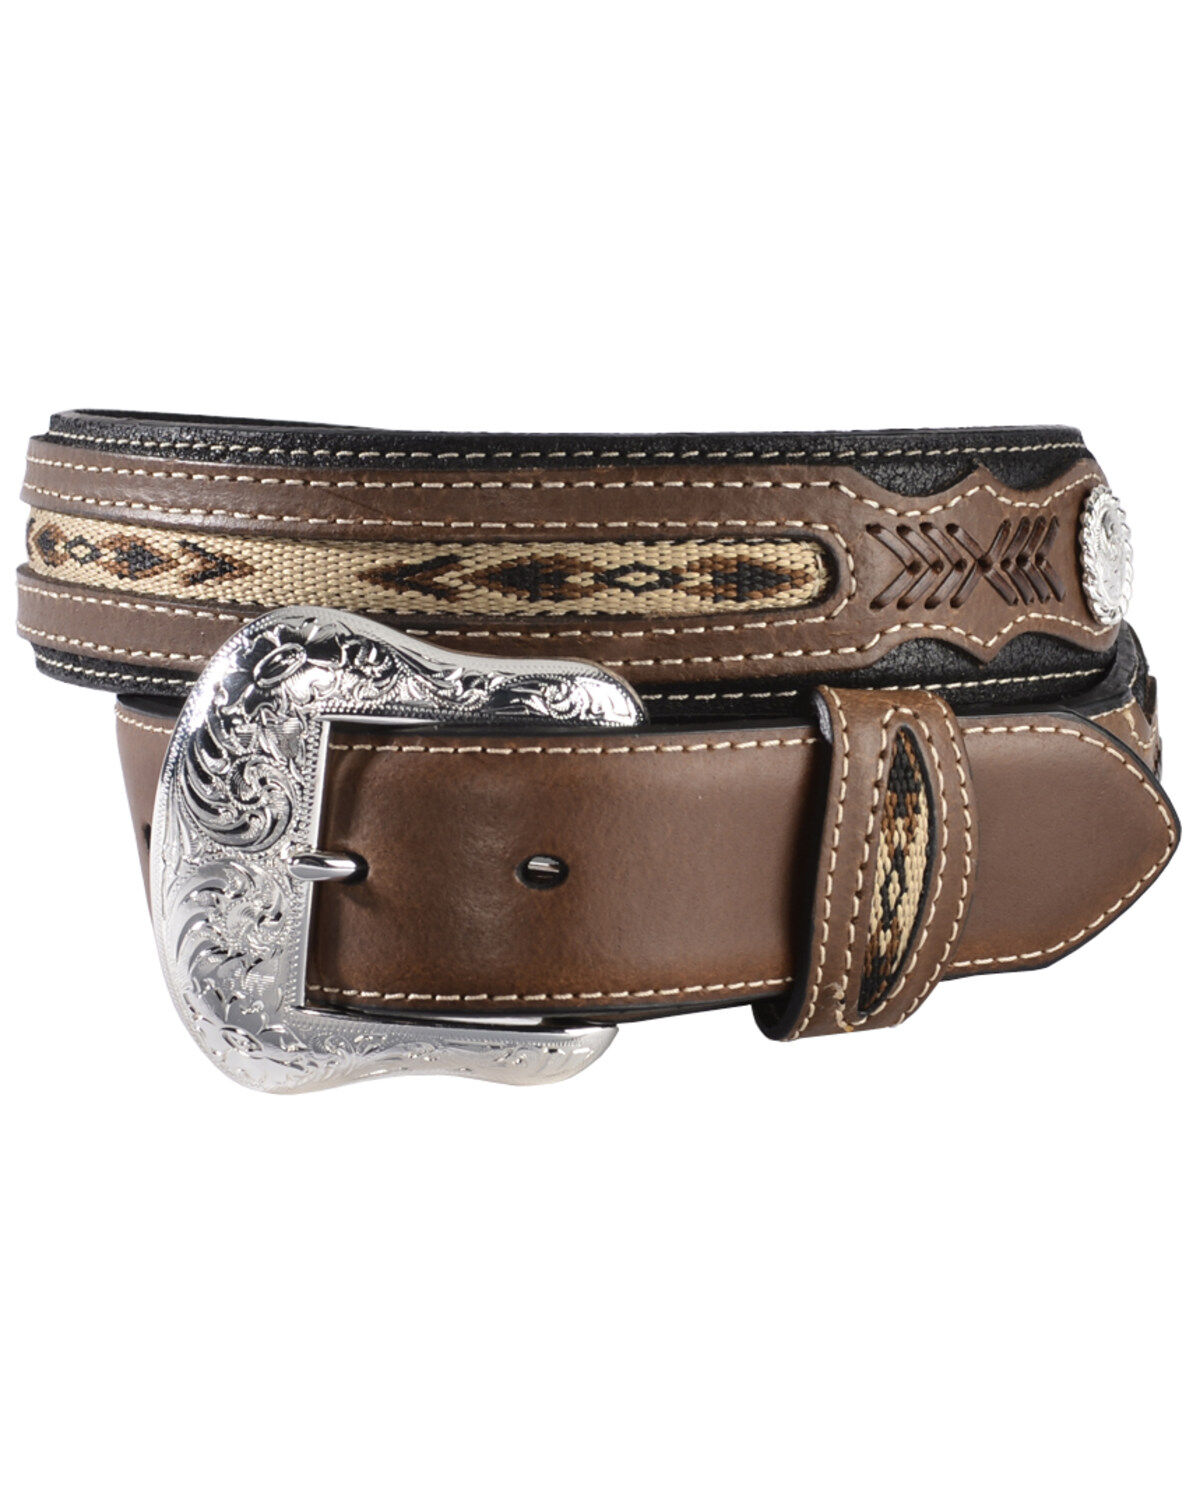 """C-8-40 40/"""" Nocona Western Mens Belt Leather Tooled Floral Contrast Stitching Tan"""